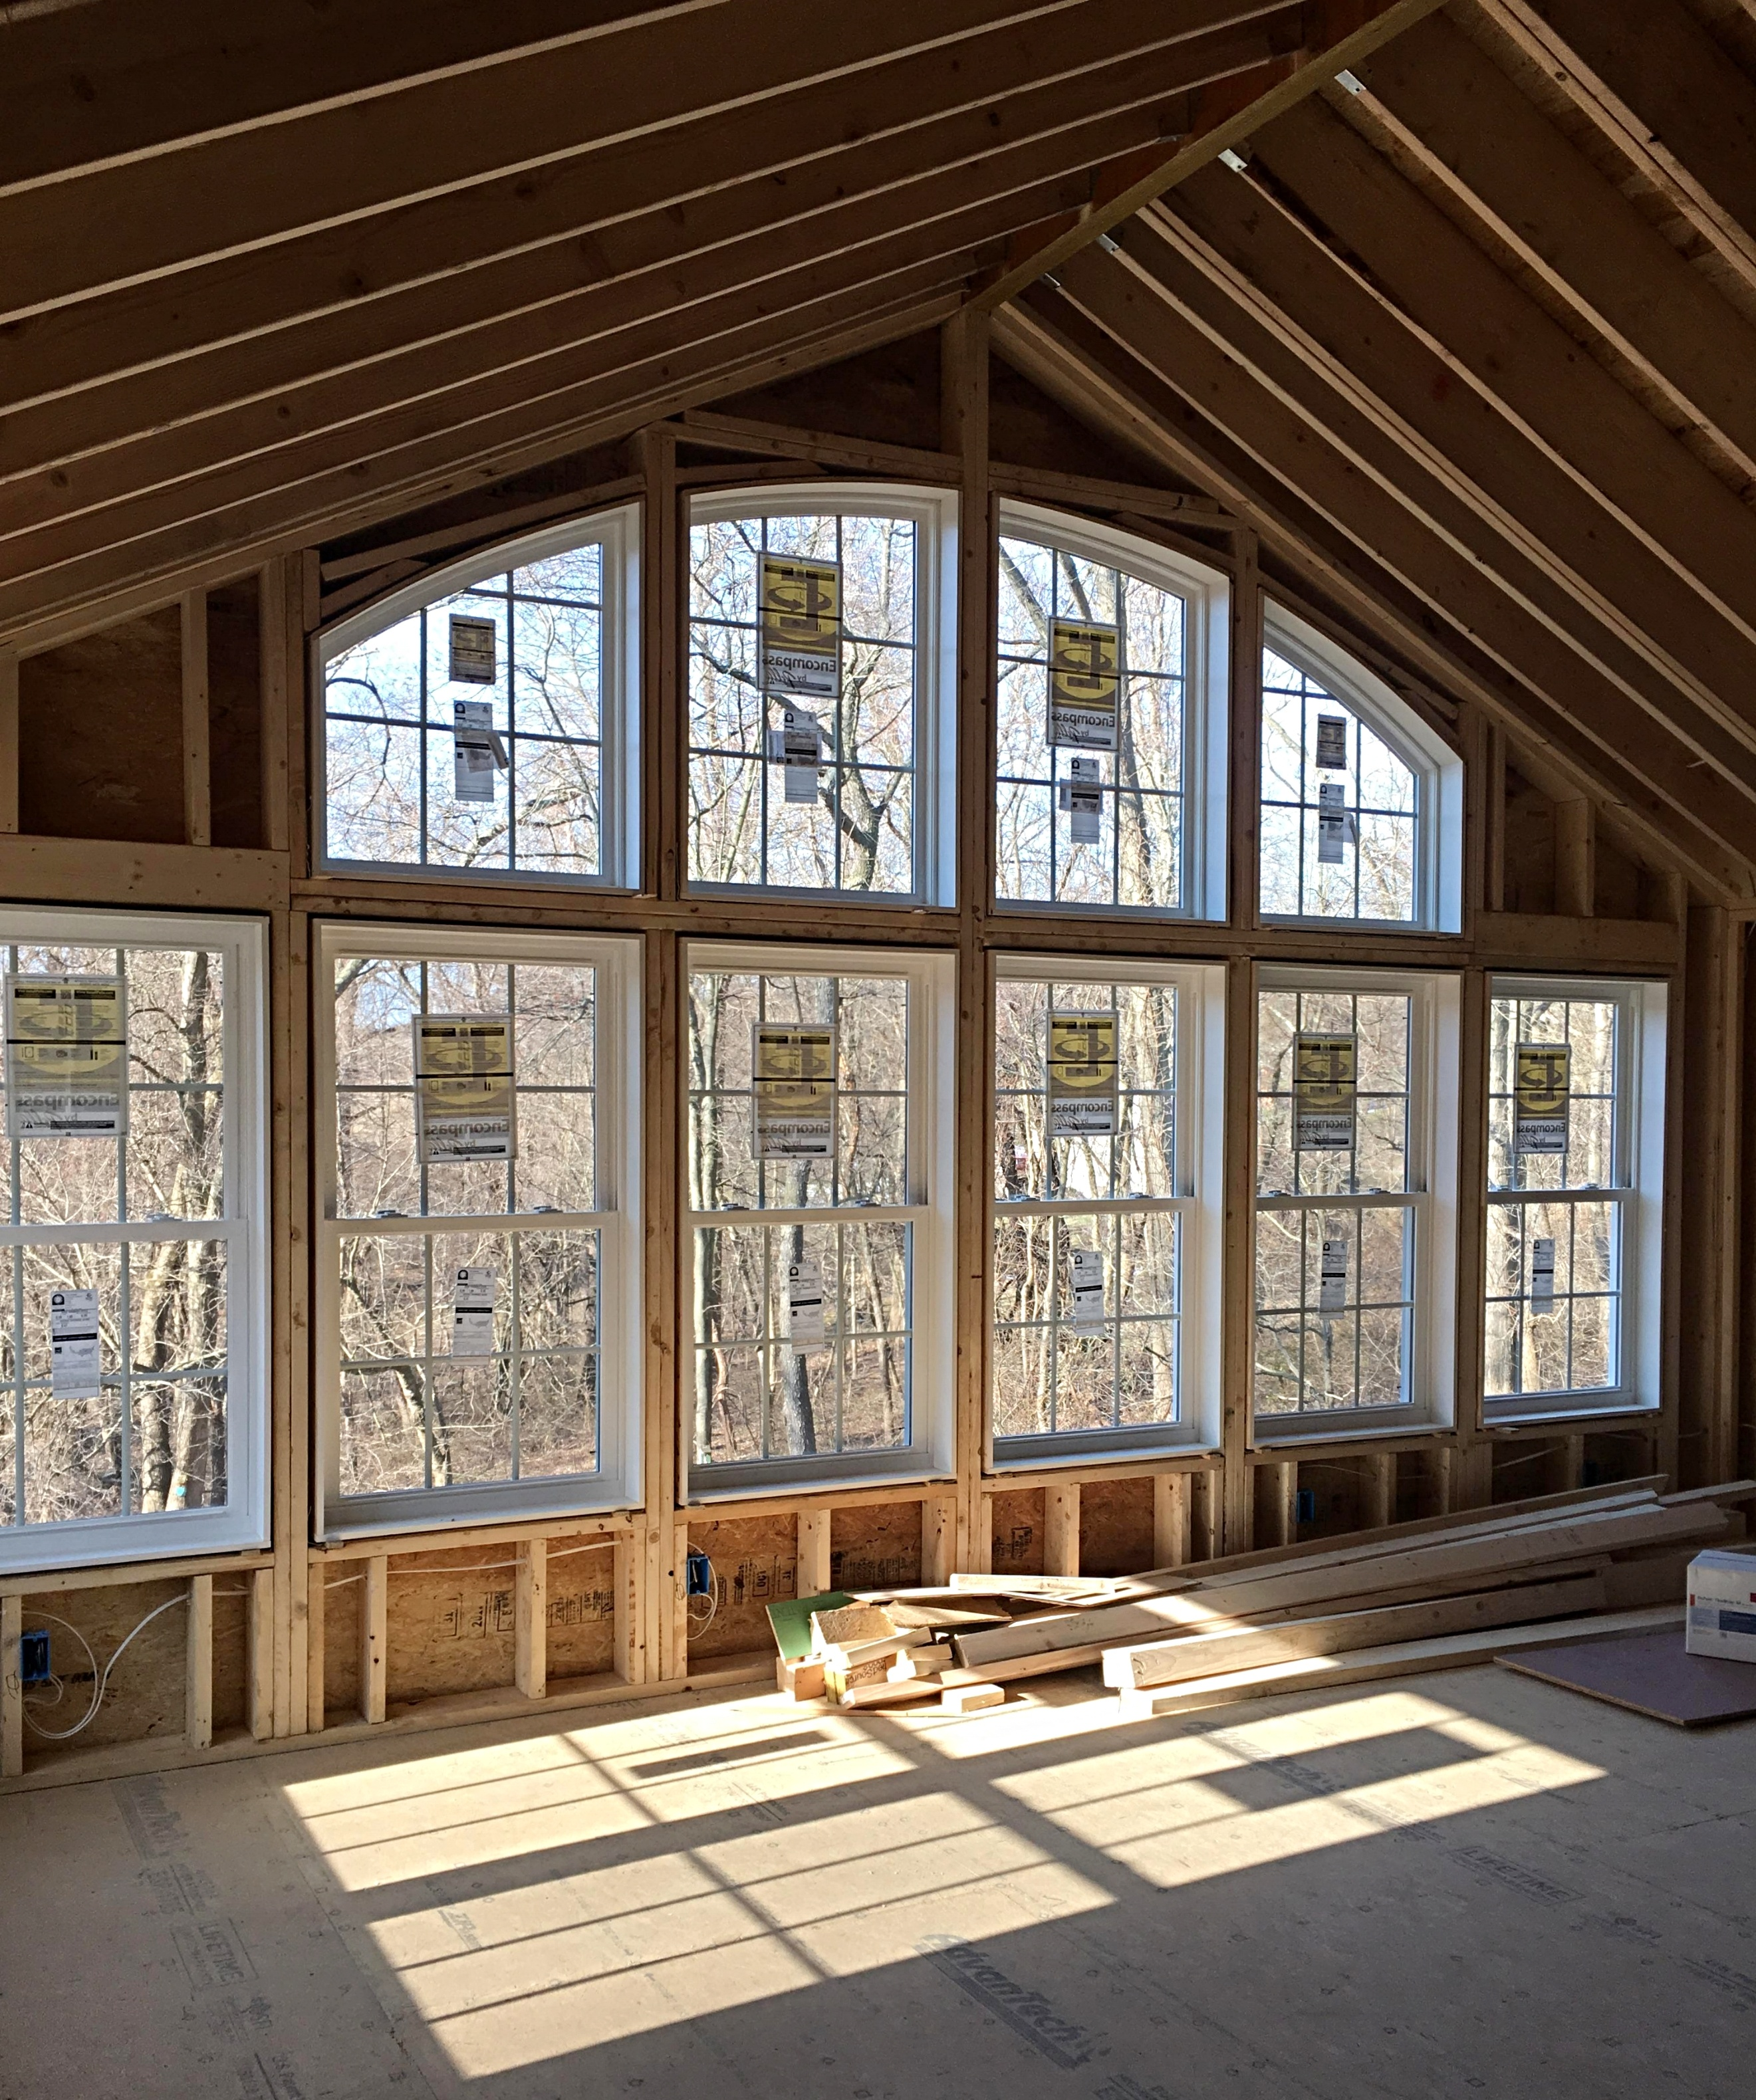 chester-county-additions-remodel-progress-windows.jpg